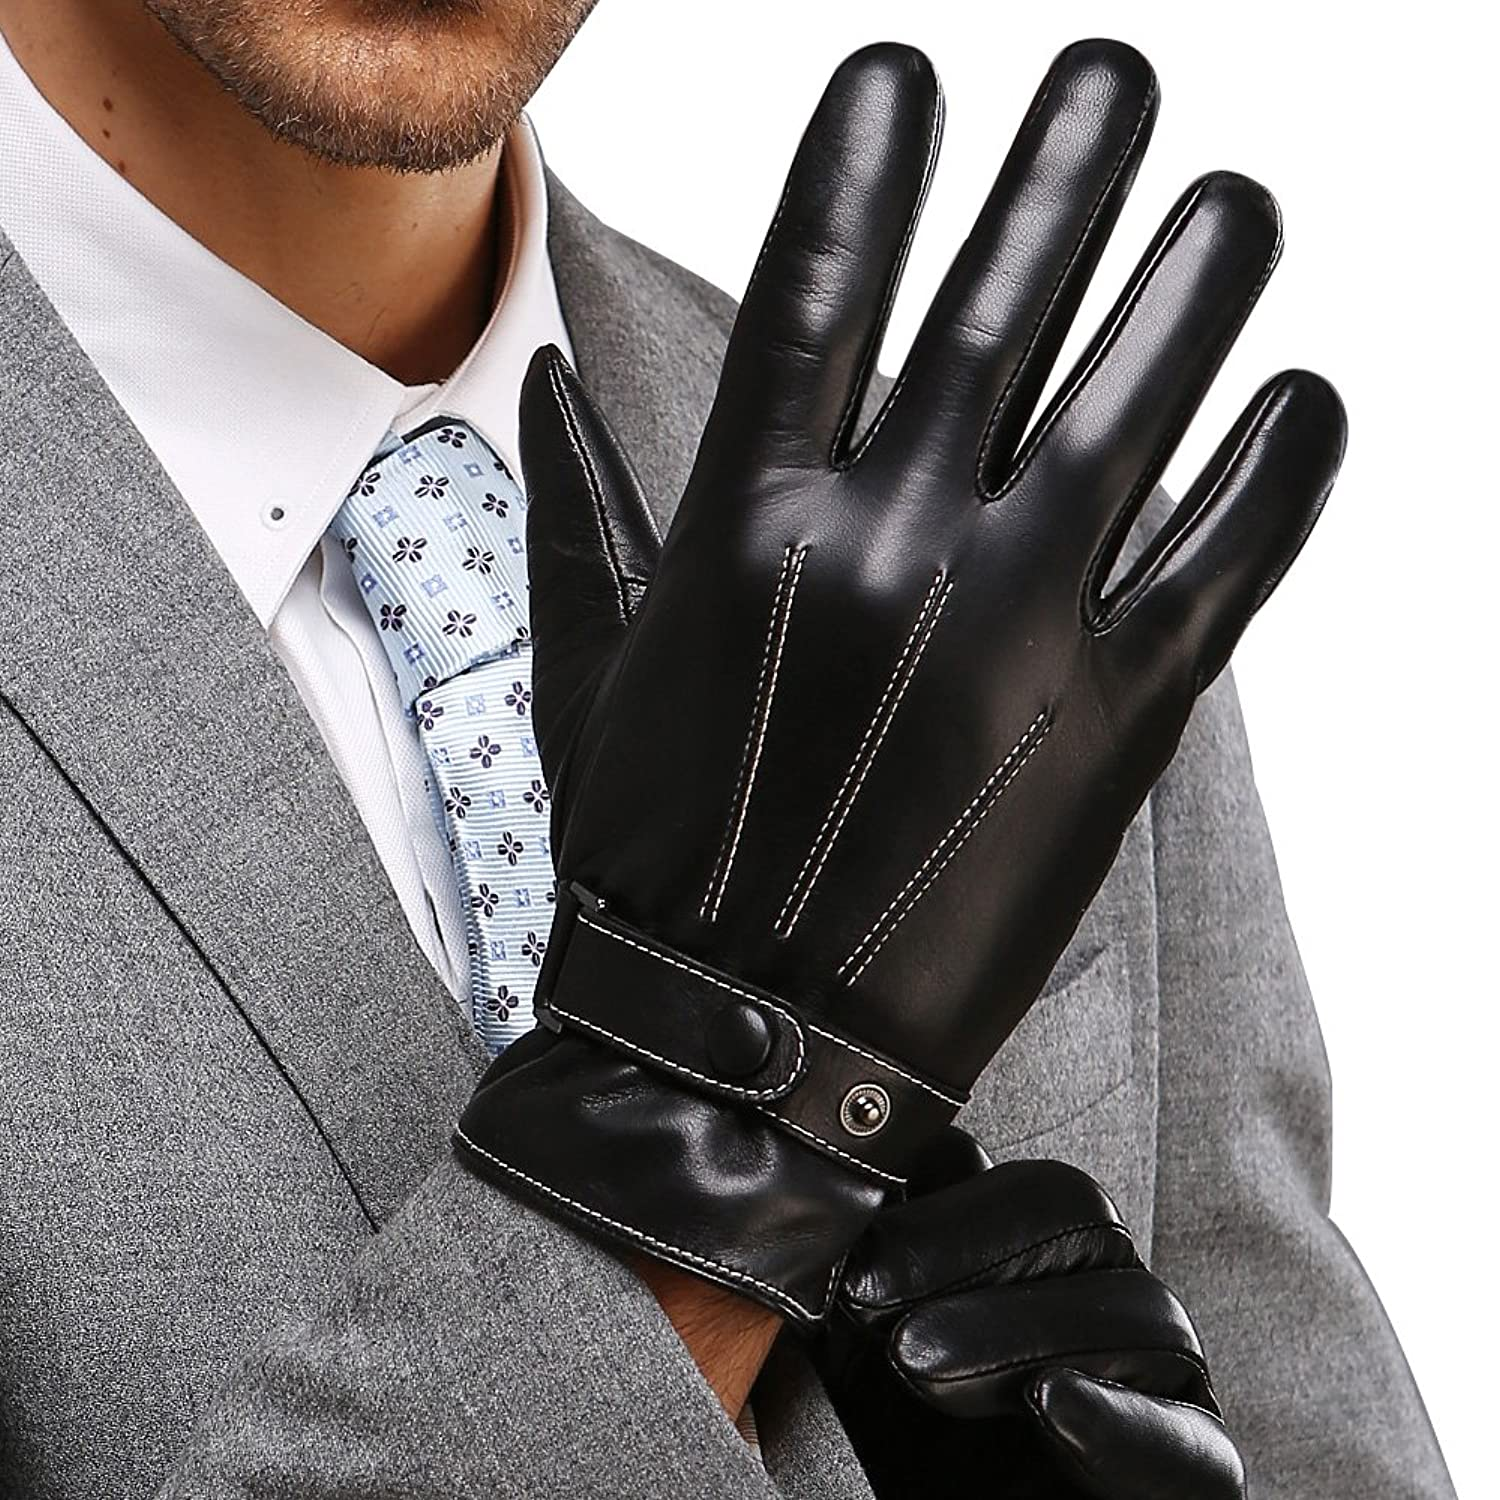 Mens leather gloves black friday - Best Winter Mens Leather Gloves Made Of Australia Lambskin Drive Work Motorcycle Riding Cycling Fleece Lining